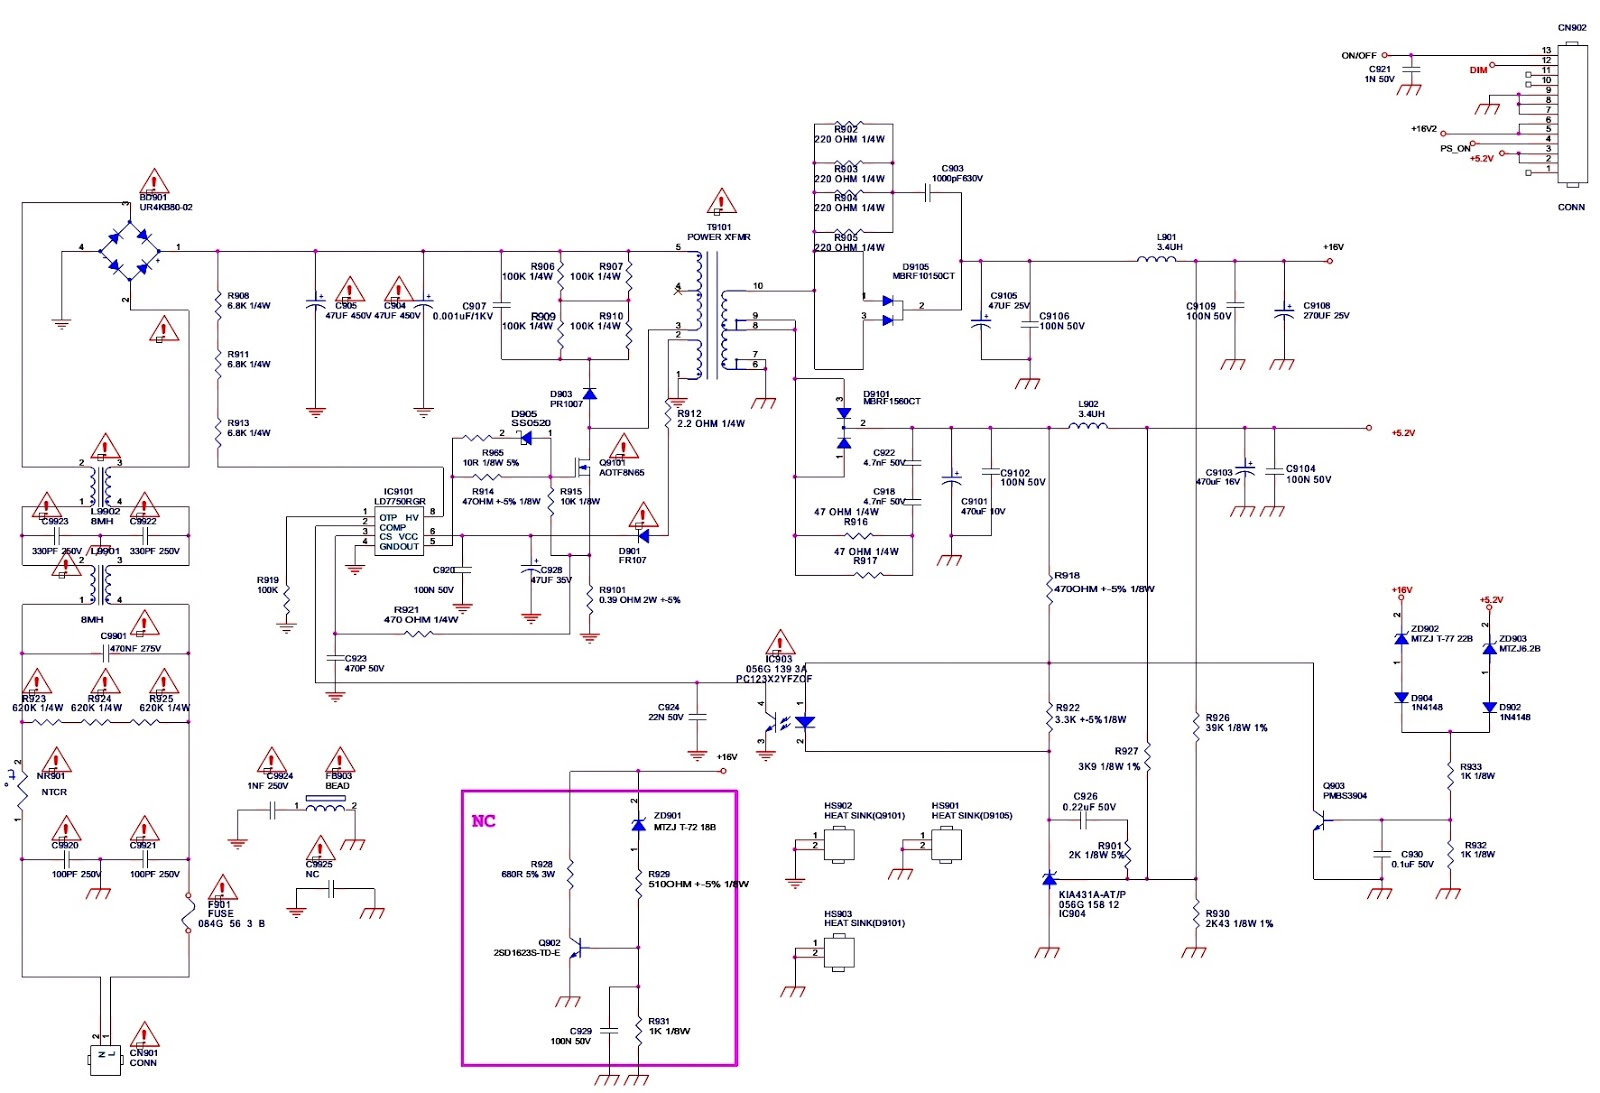 aoc le22h158 led tv power and led driver schematic electro help TV Component Parts smps led driver schematic